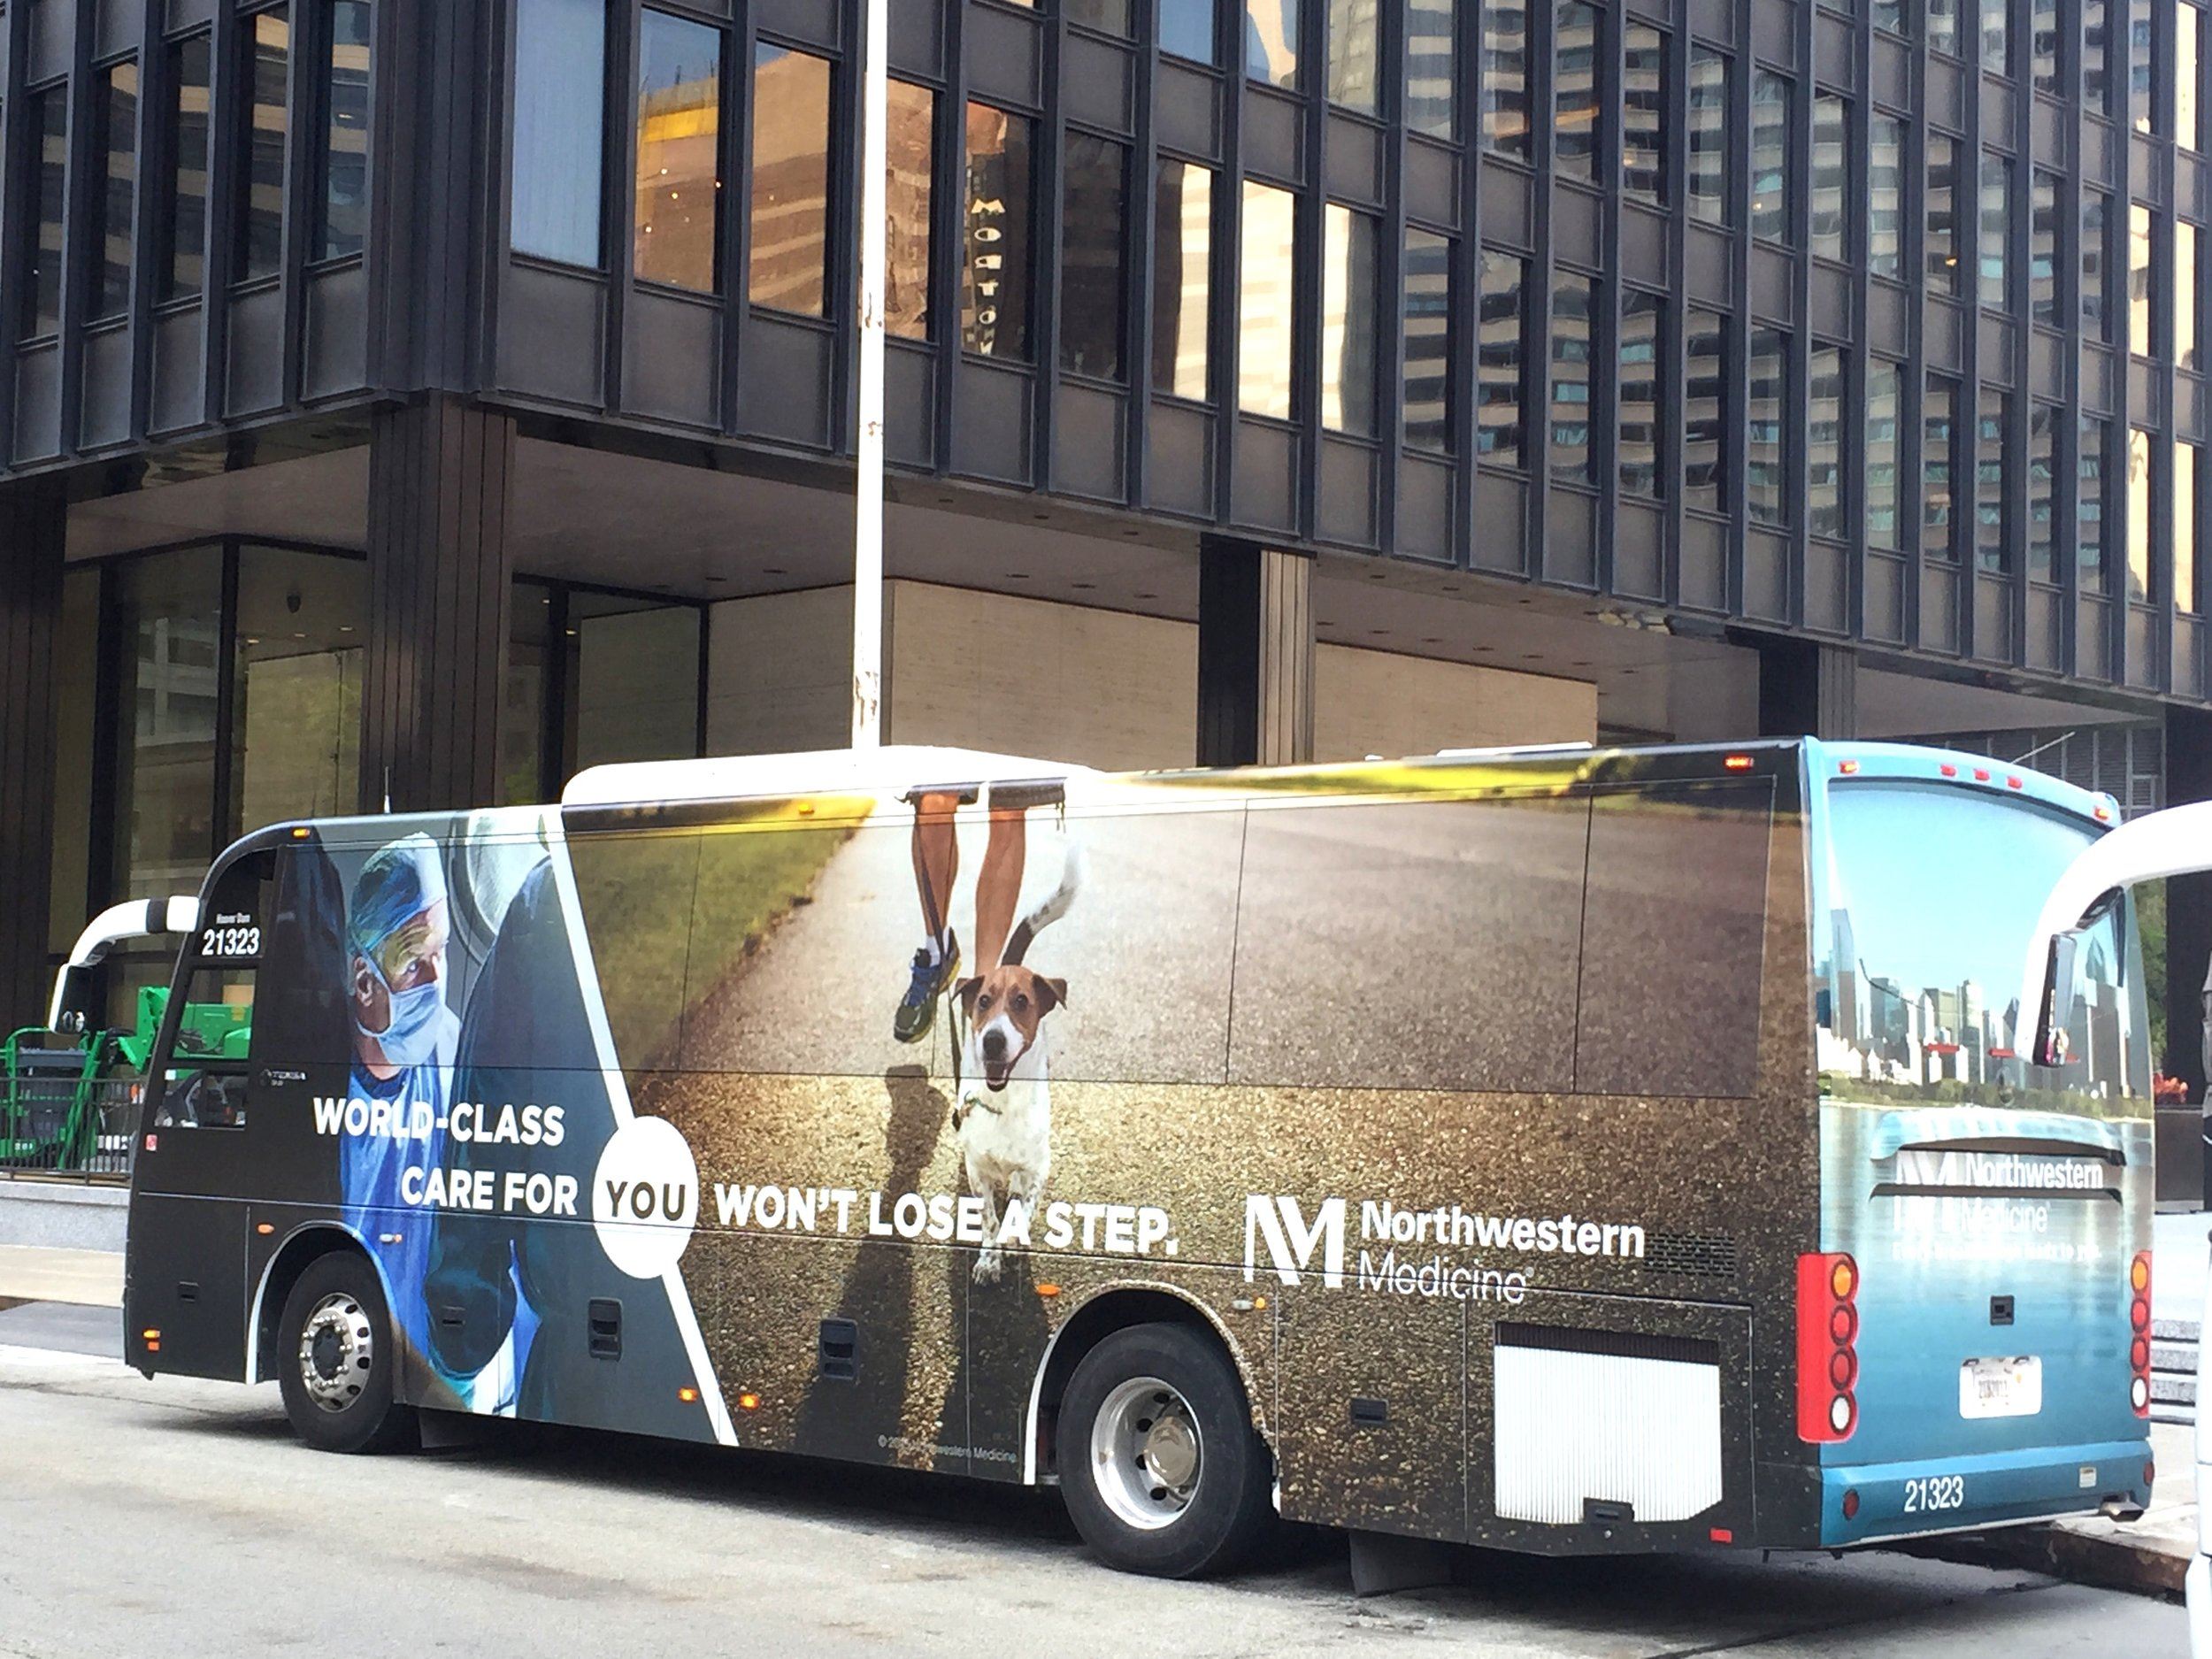 Northwestern Medicine bus 1 side 2_2.jpg